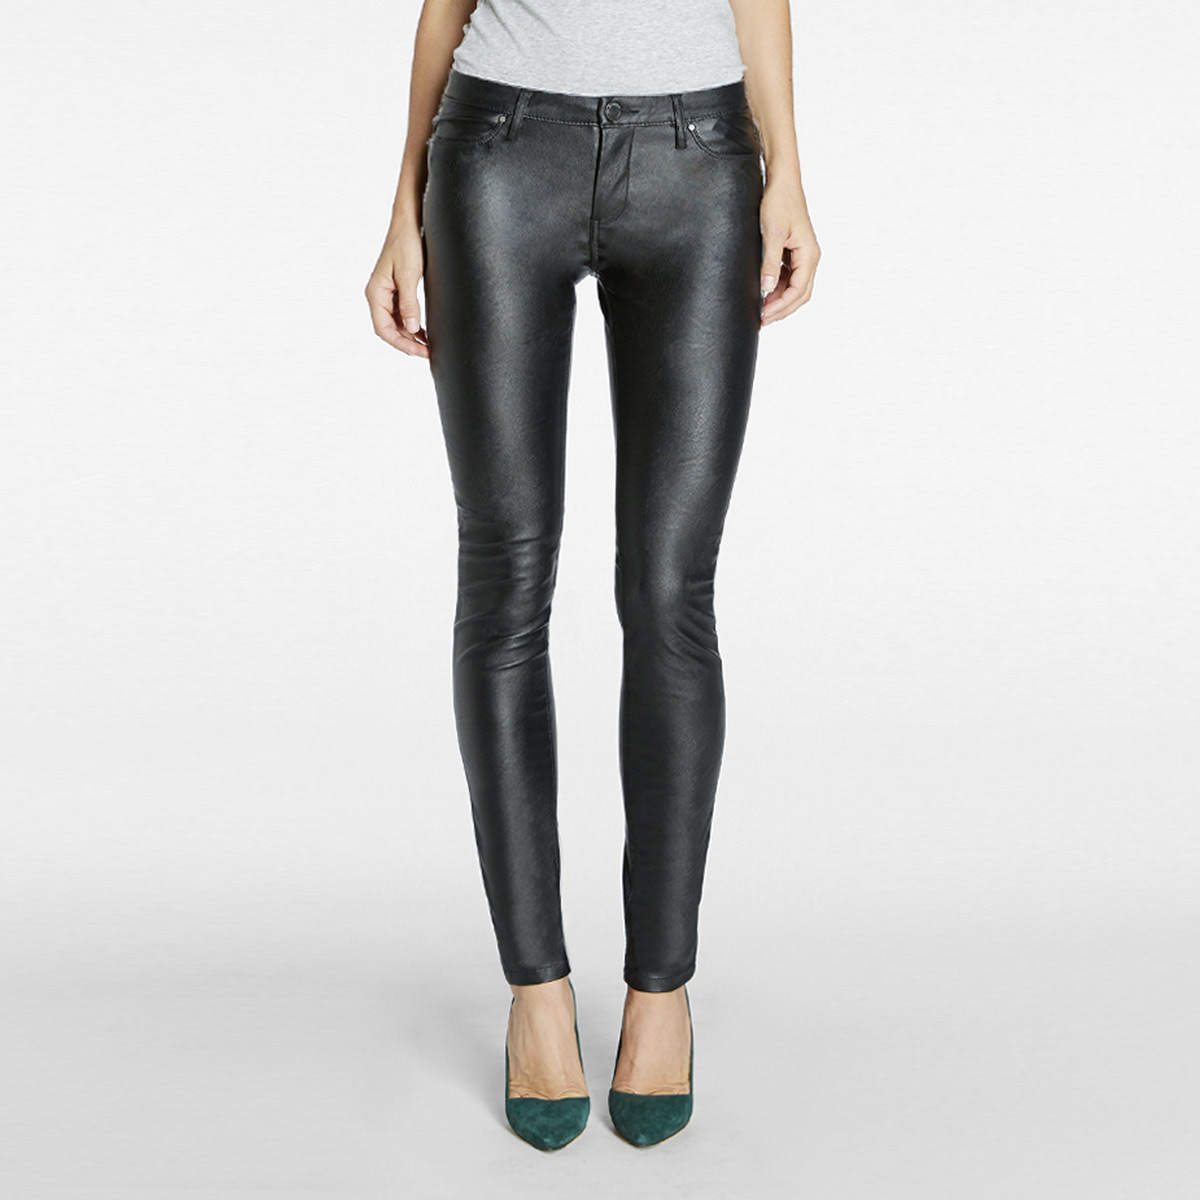 Blanknyc Faux Leather Skinny Pant Womens Apparel At Vickerey